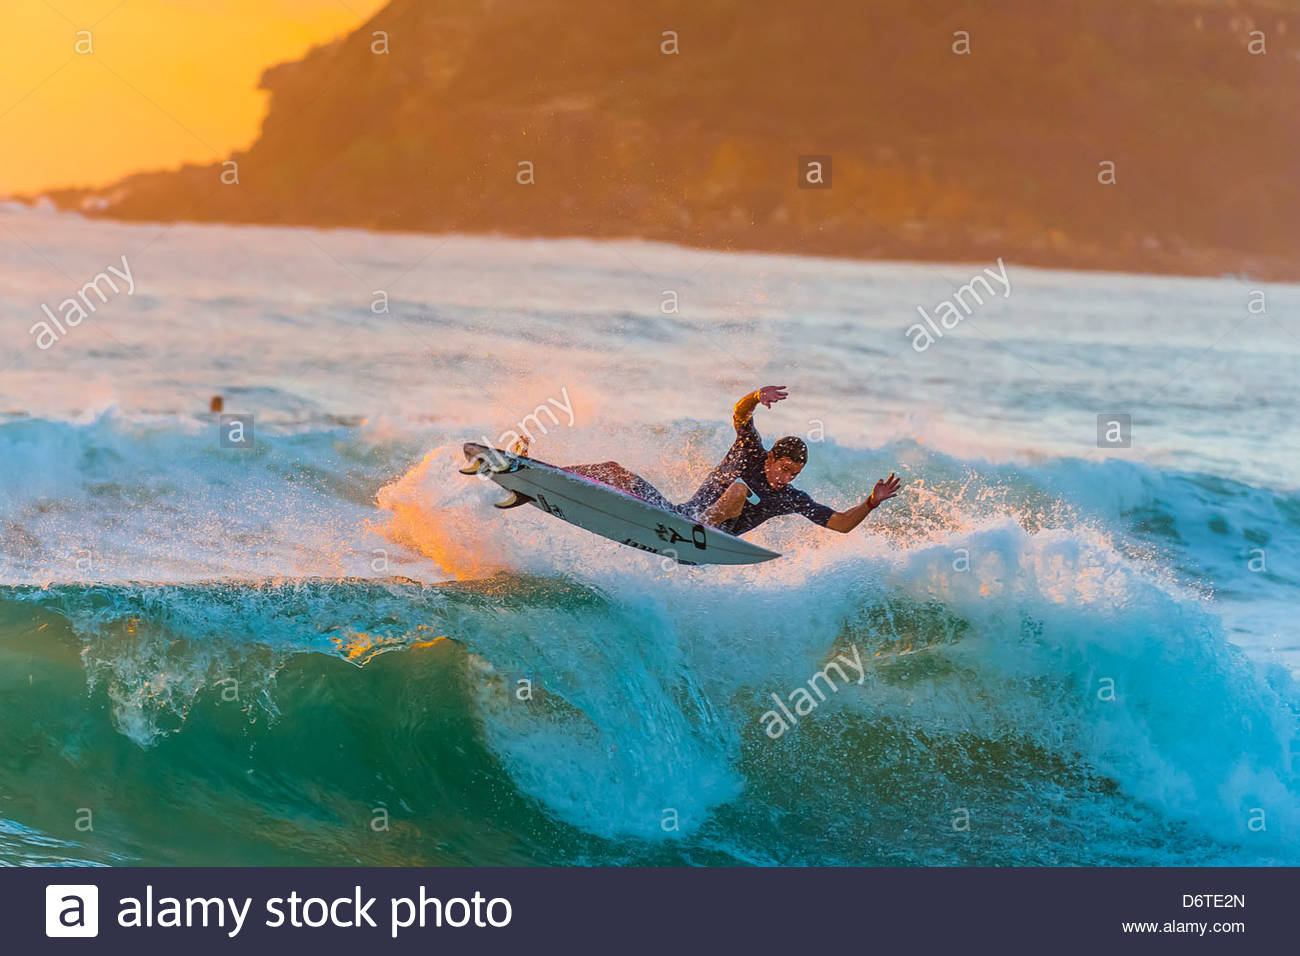 Surfen bei Sonnenaufgang, Manly Beach, Sydney, New South Wales, Australien Stockbild